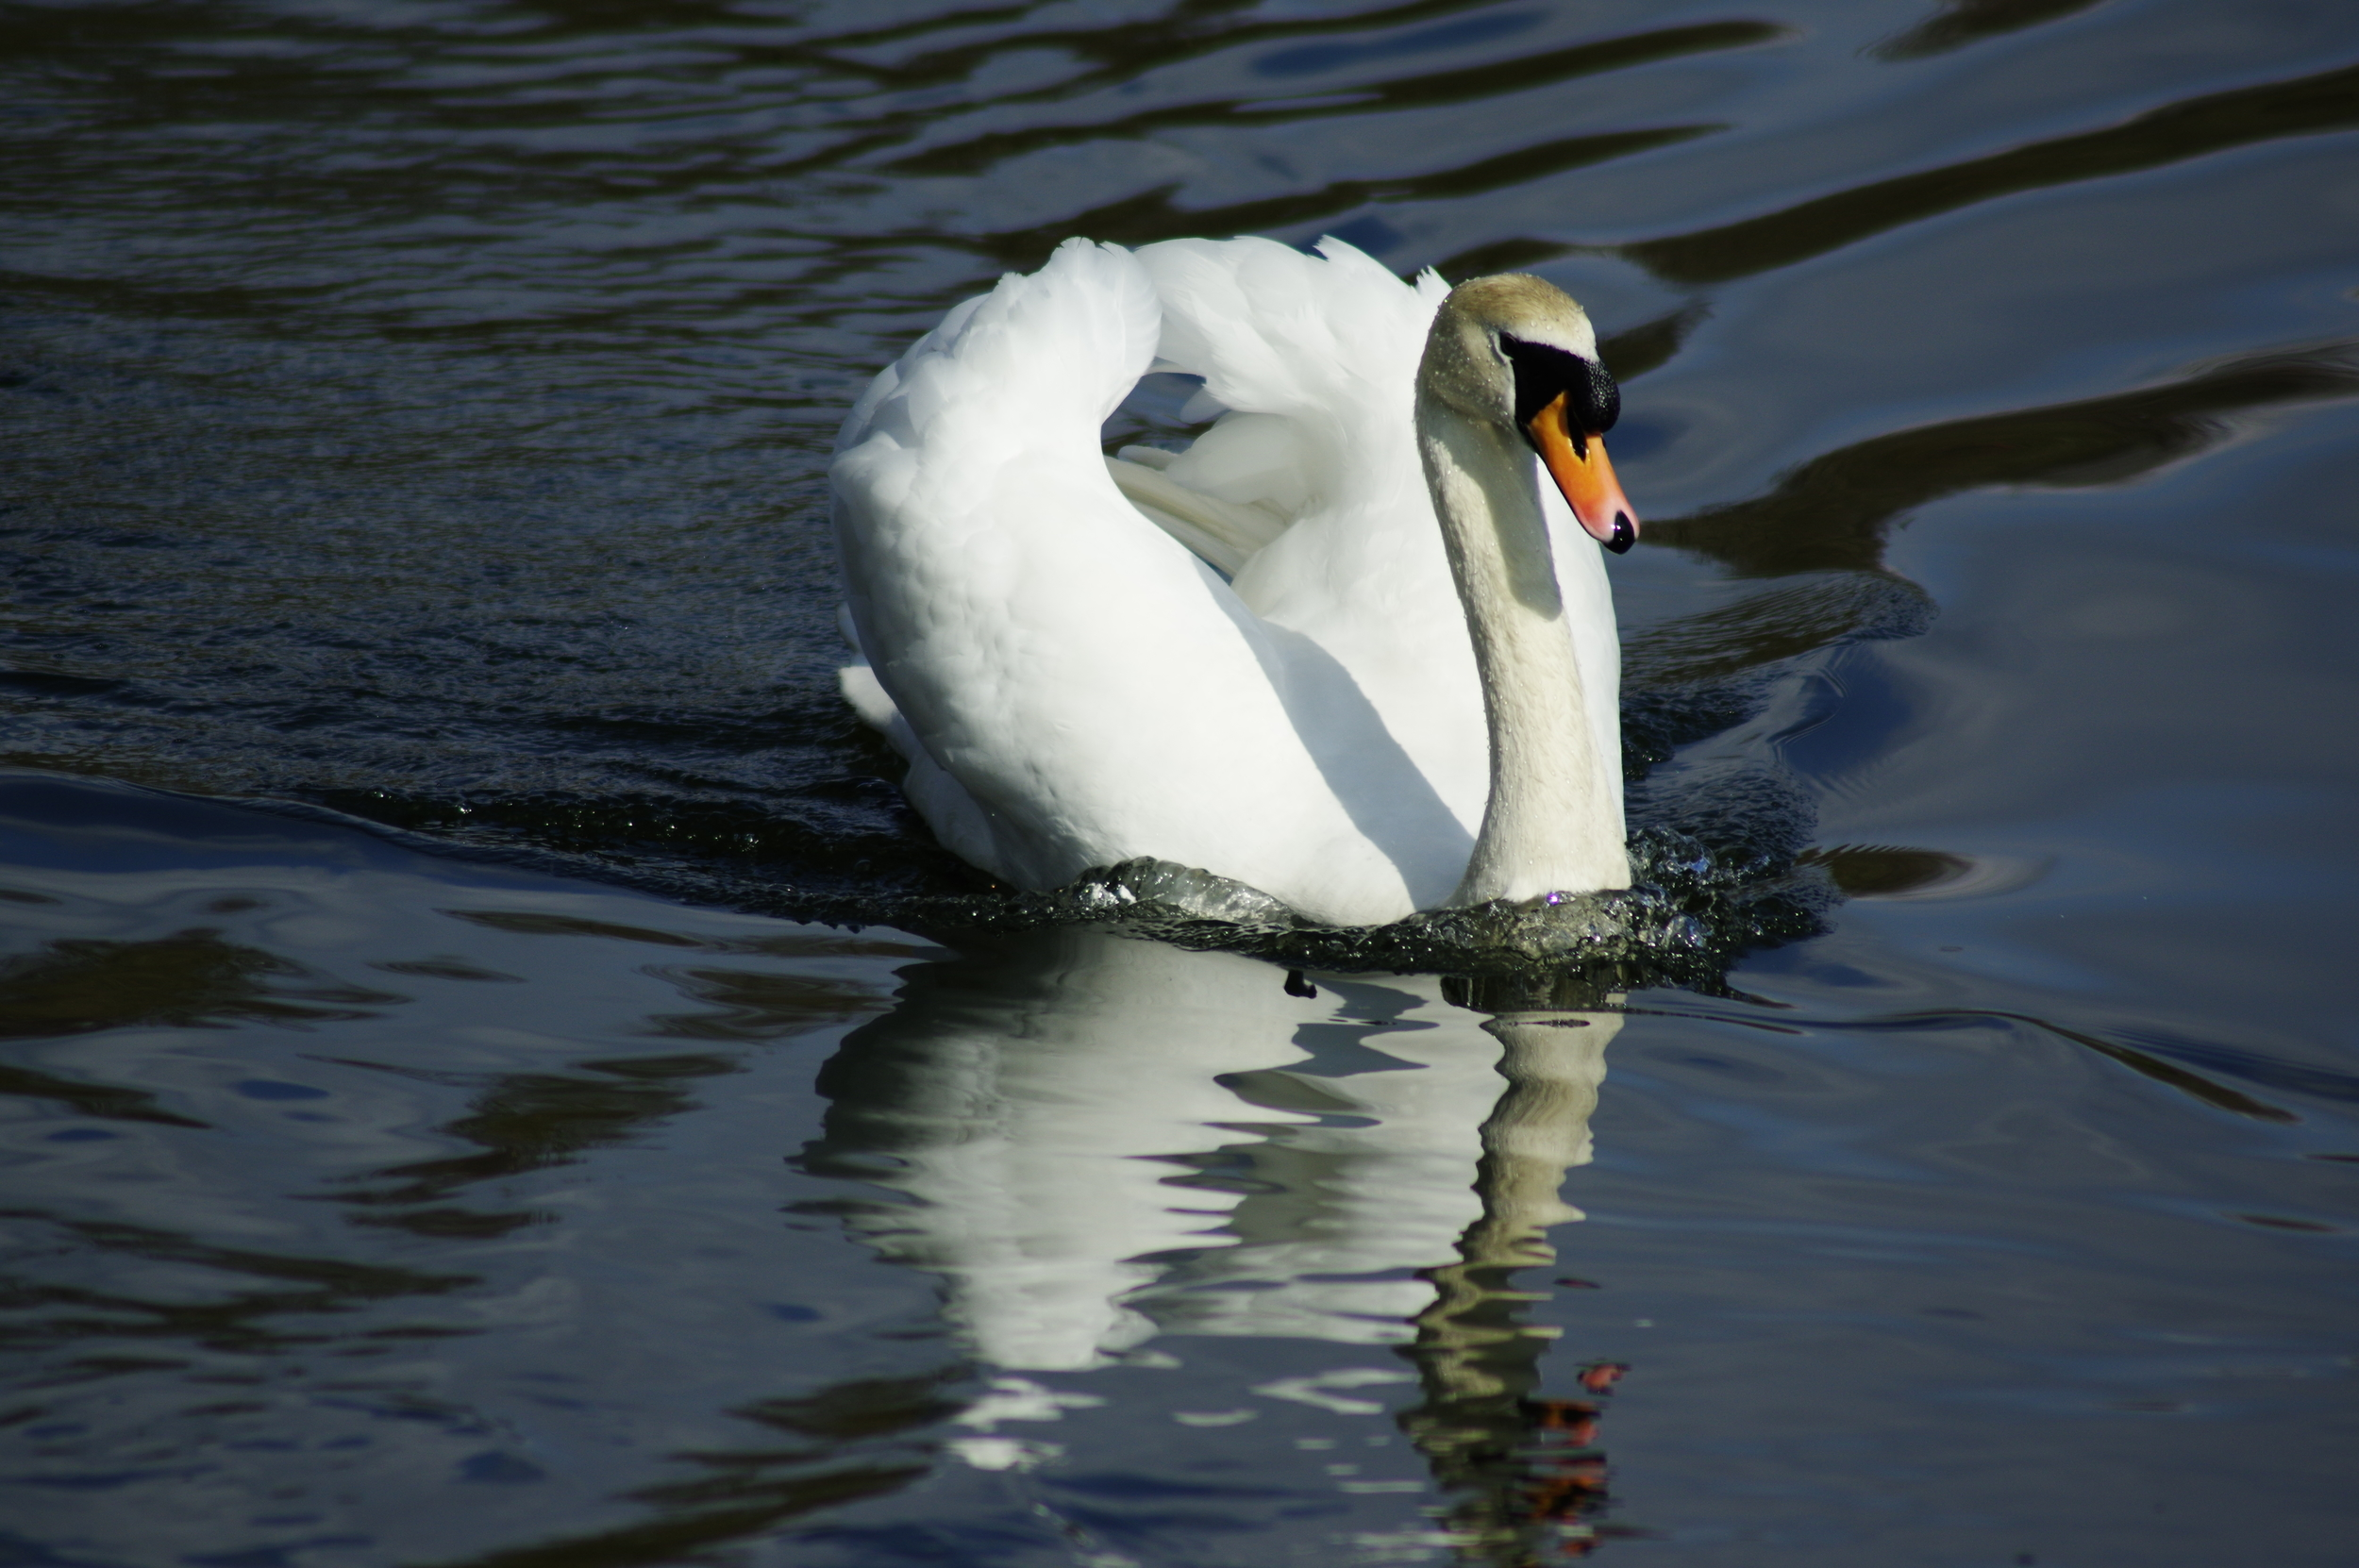 Majestic Mute Swan and Reflection #1